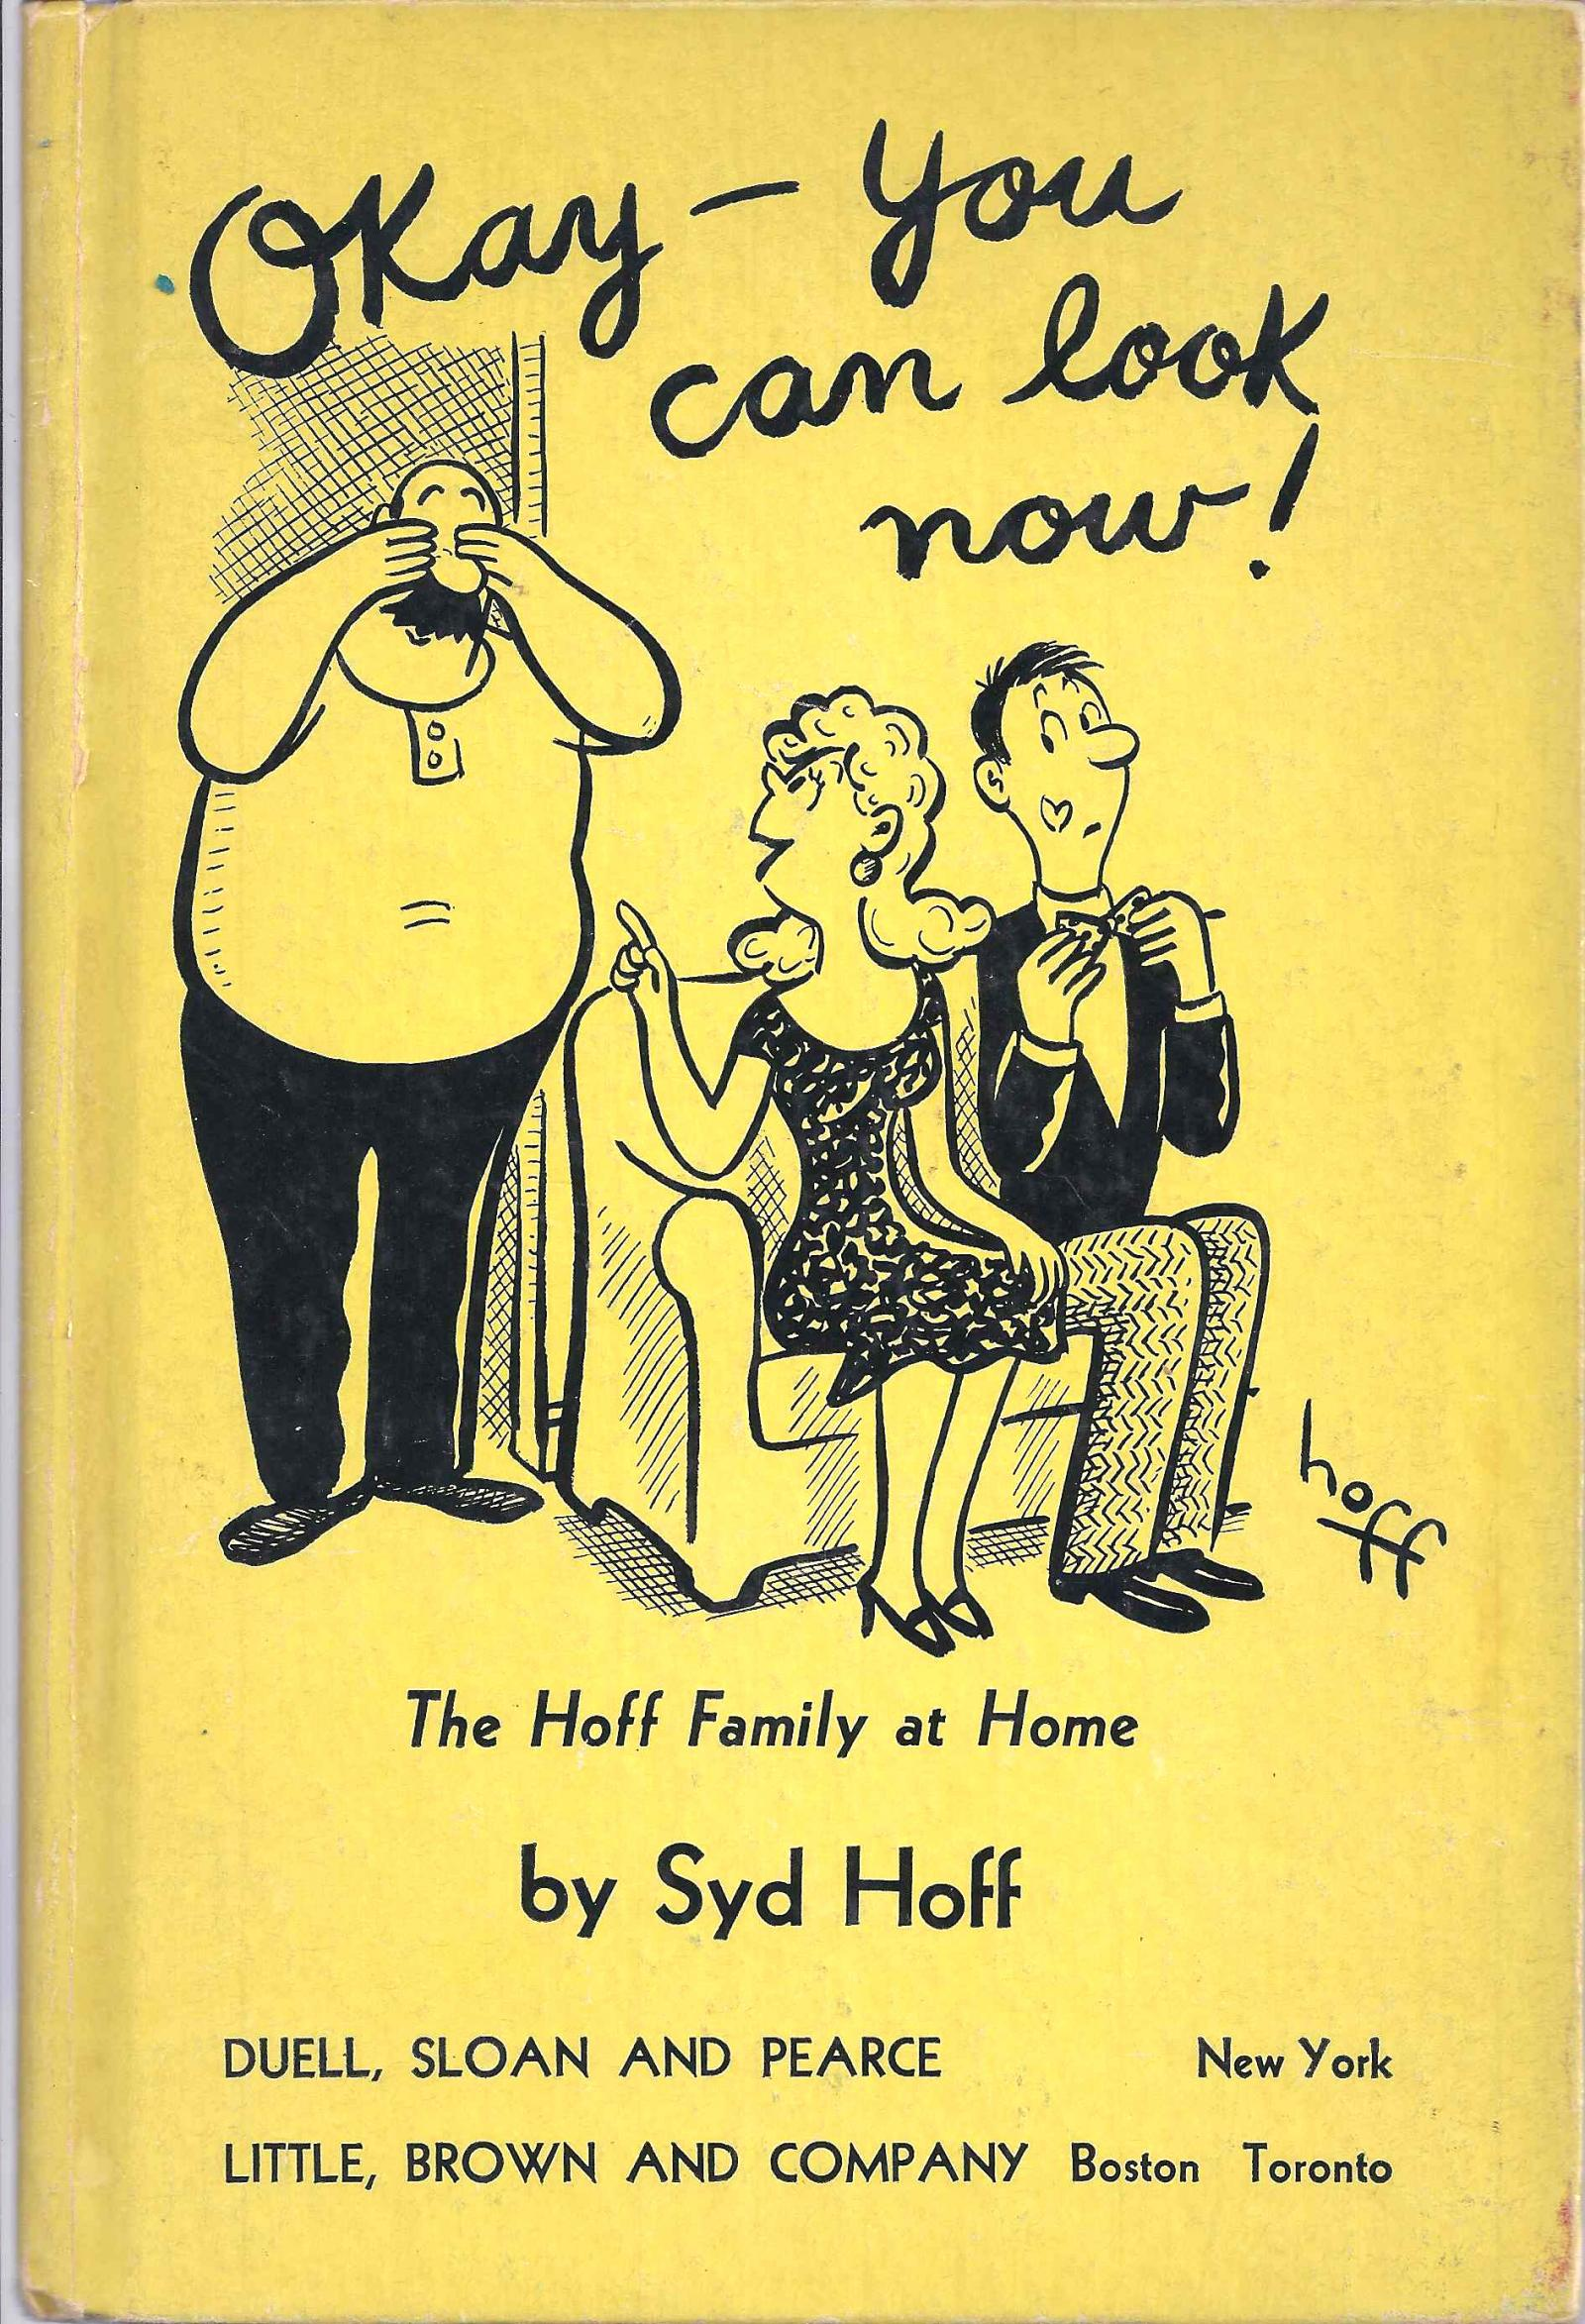 A Book of Cartoons by Syd Hoff